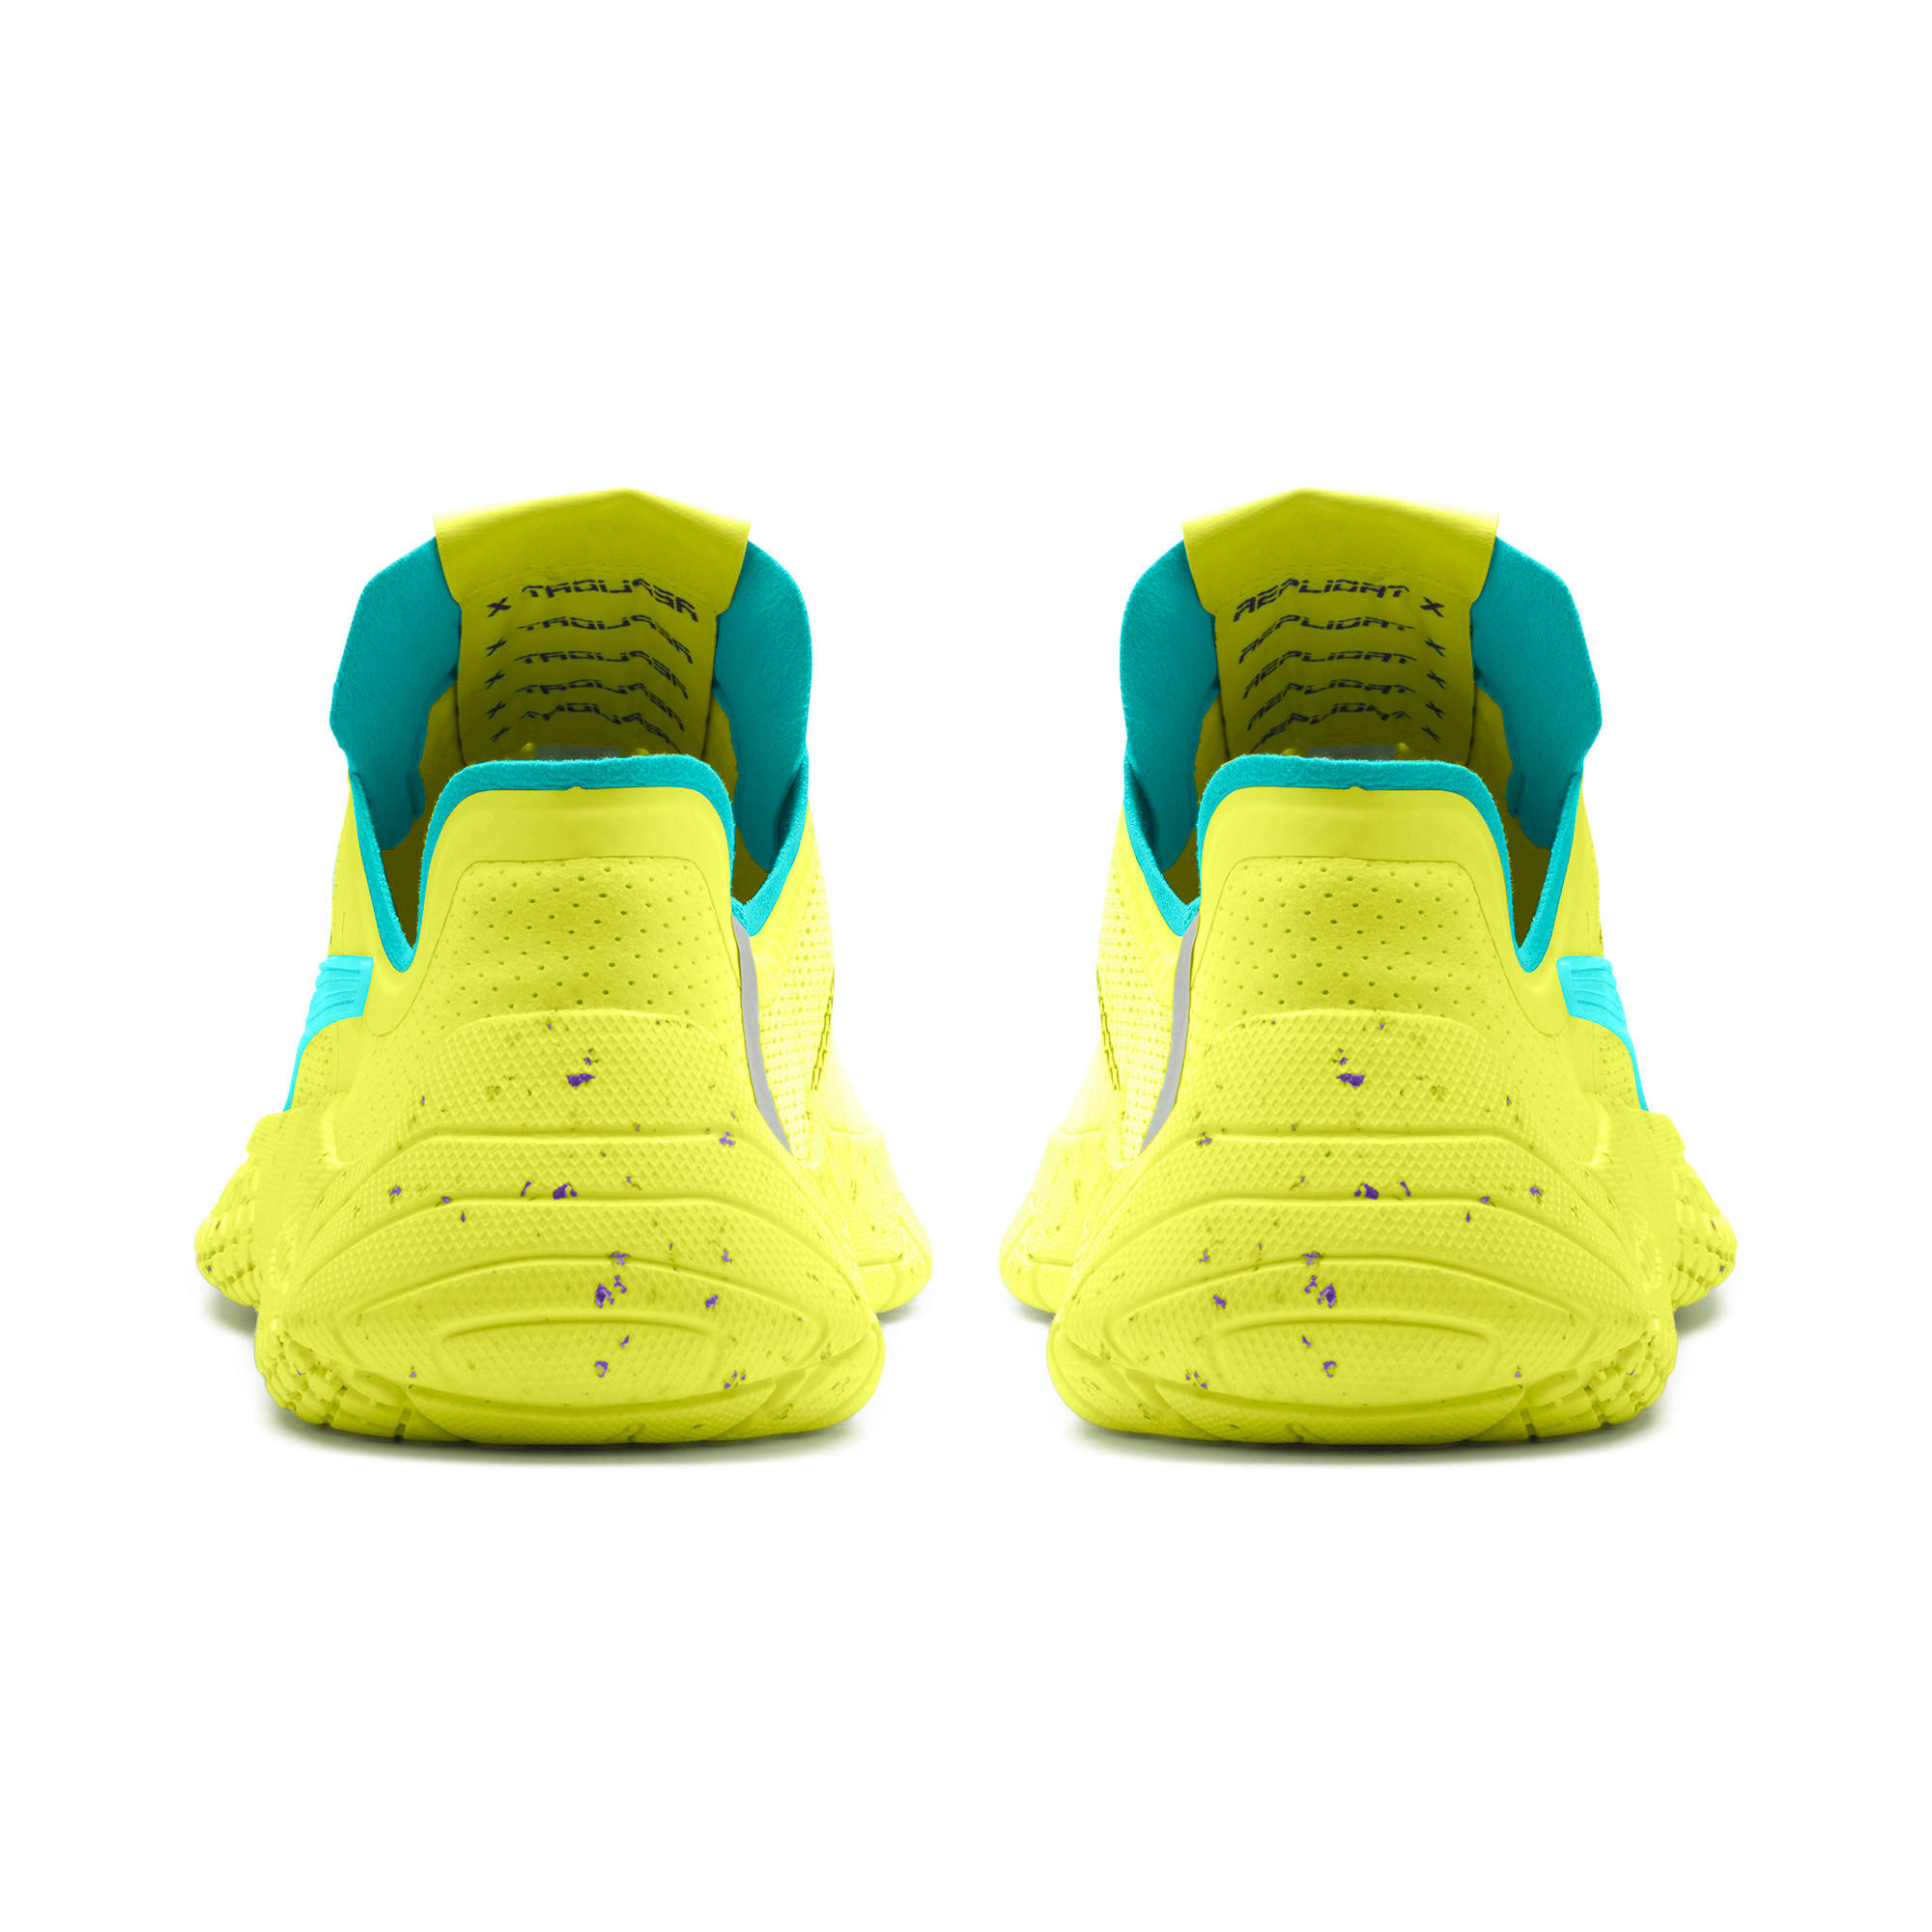 Thumbnail 3 of Replicat-X Fluro Trainers, Fzy Ylw-Blu Trqse-Prpl Glmr, medium